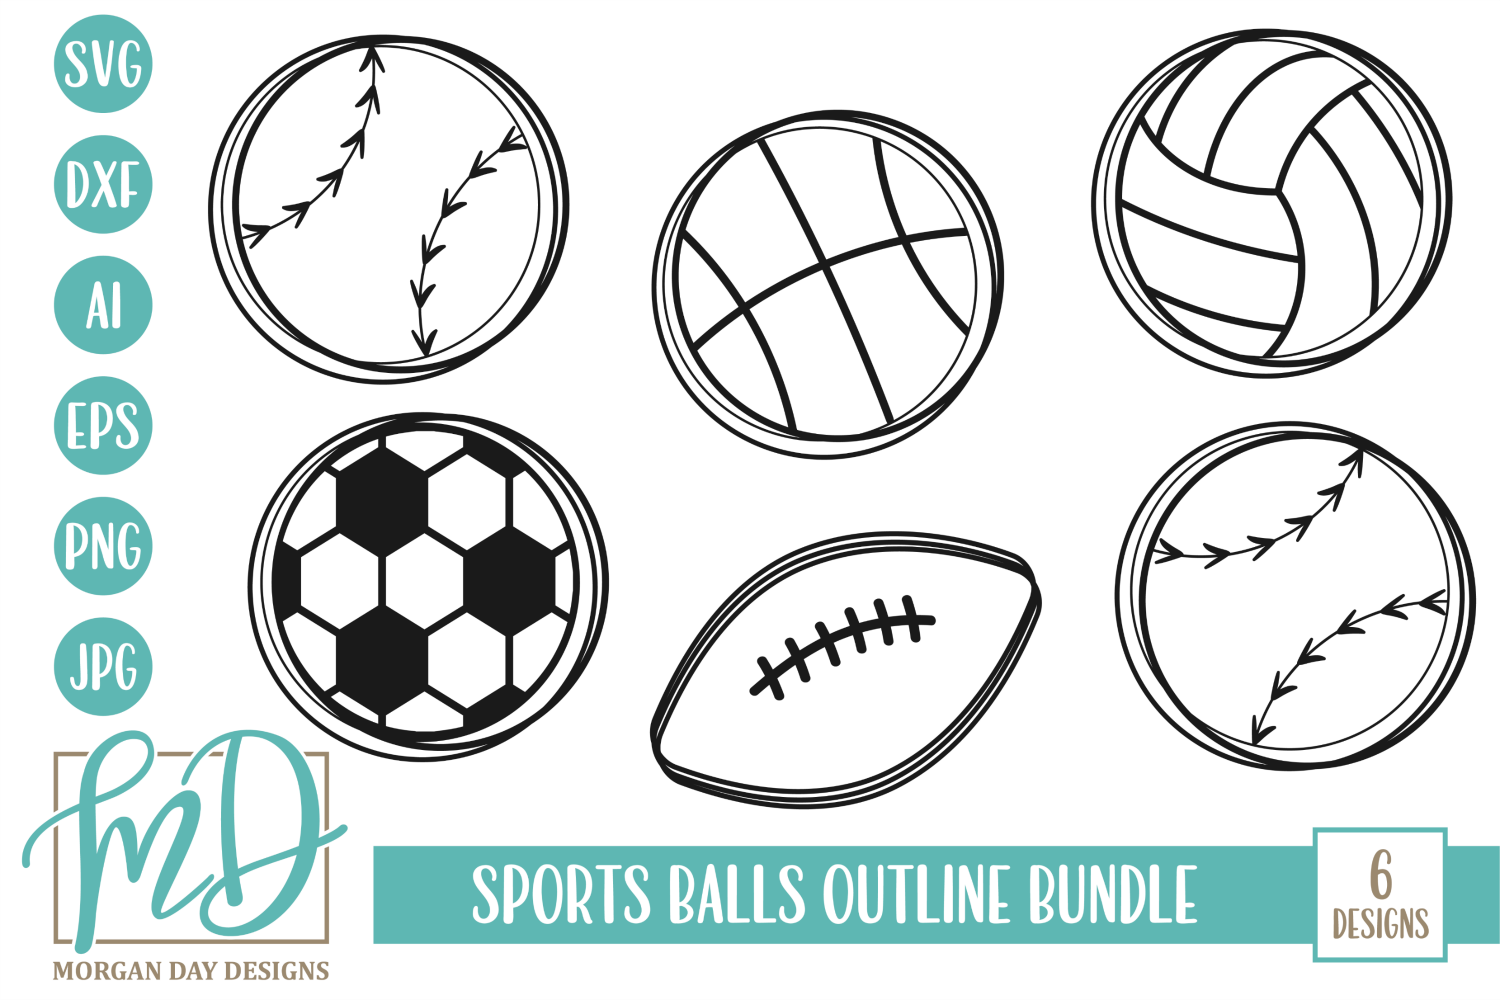 Sports Balls Outline Svg Bundle Graphic By Morgan Day Designs Creative Fabrica